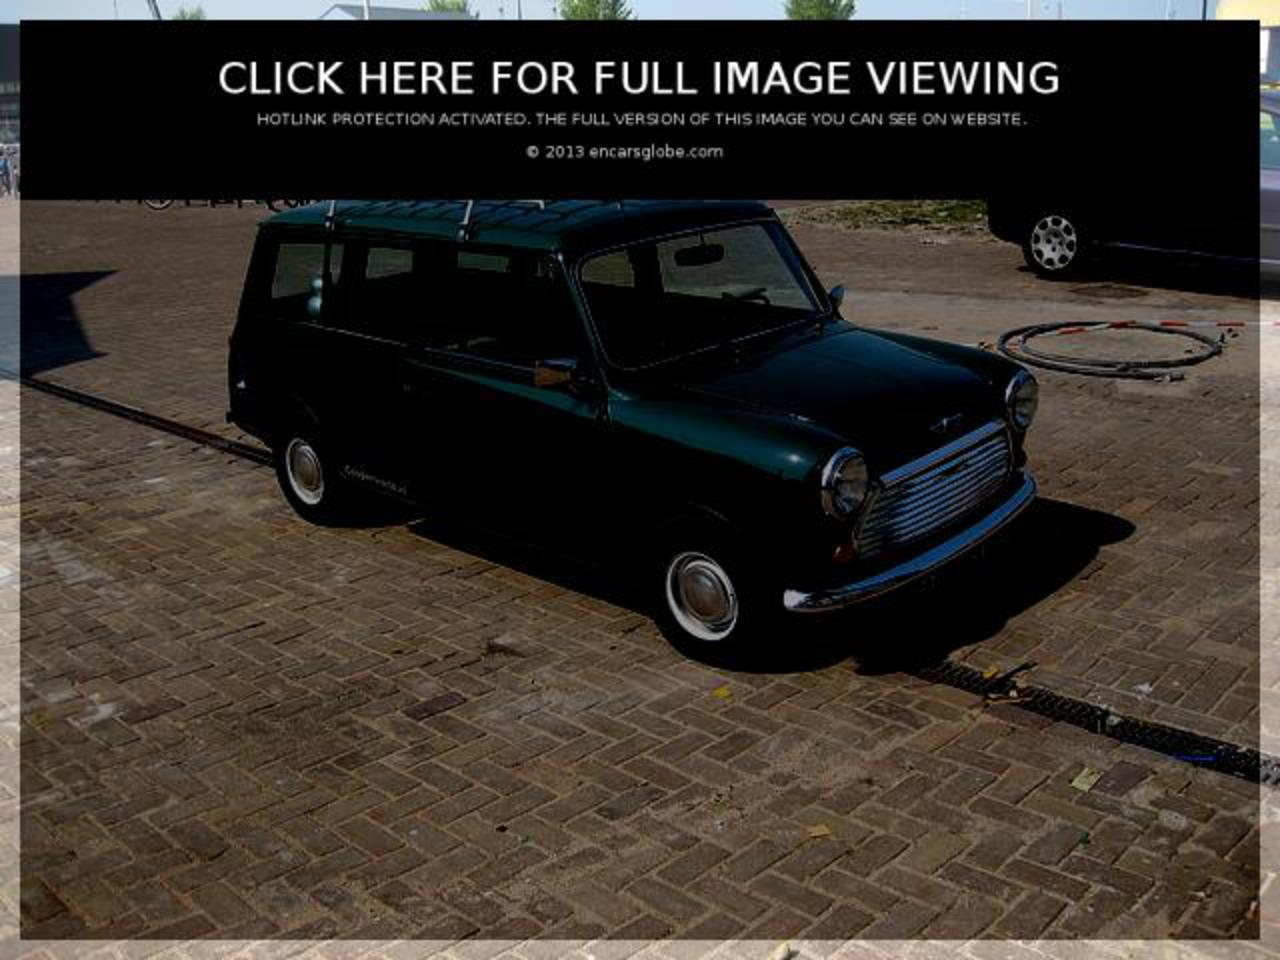 Mini Clubman Stationcar Photo Gallery: Photo #06 out of 9, Image ...